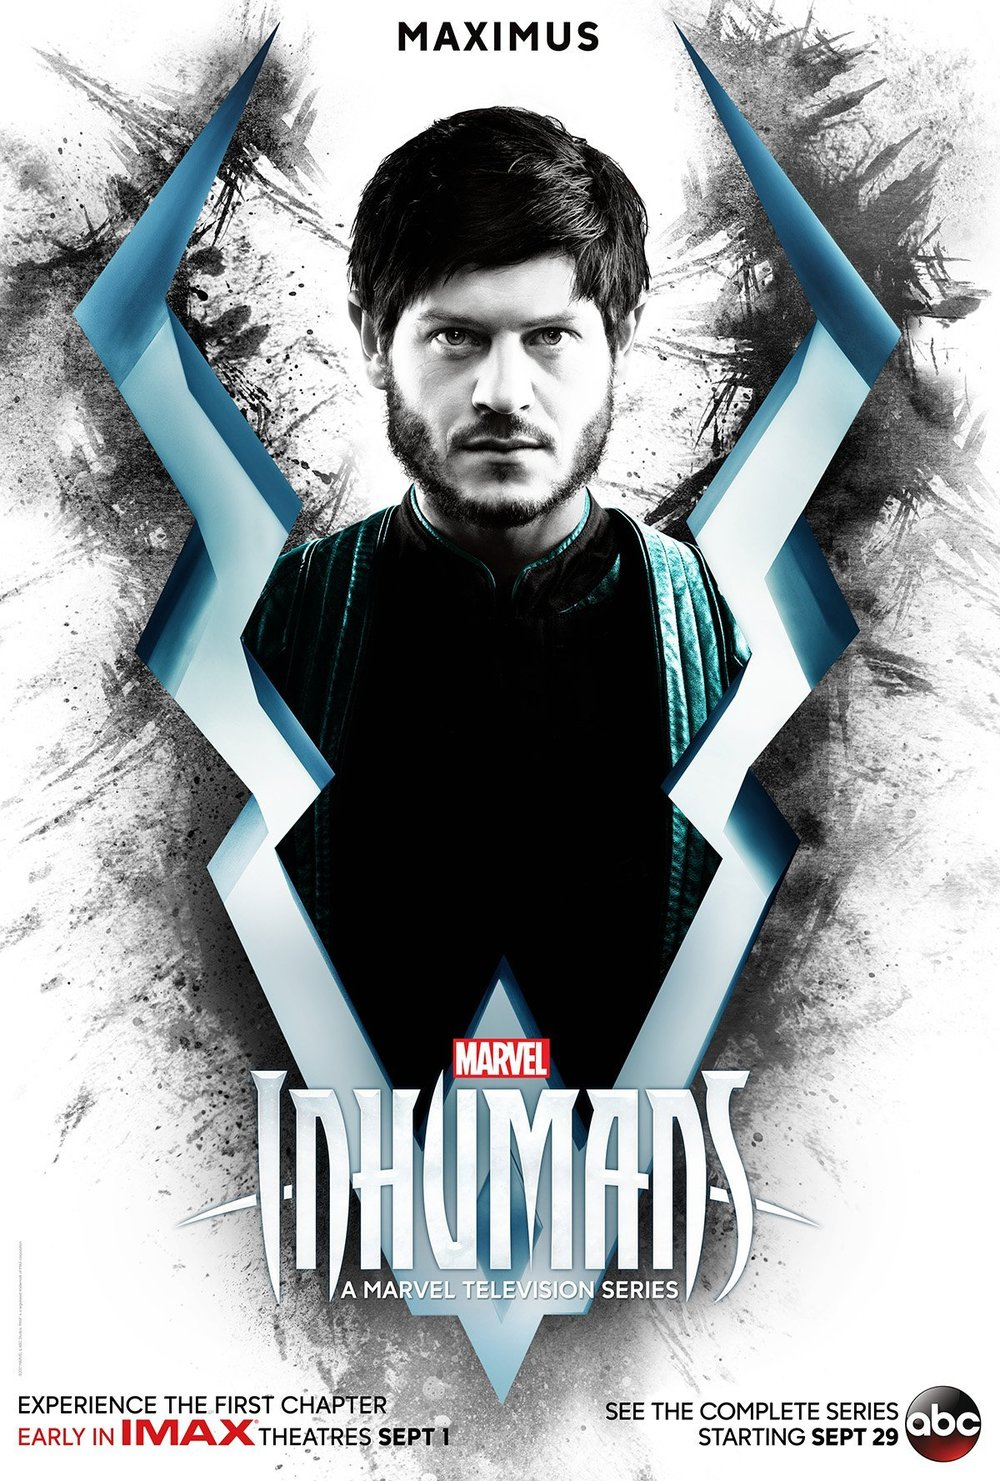 marvels-the-inhumans-character-posters-maximus-1010817.jpg